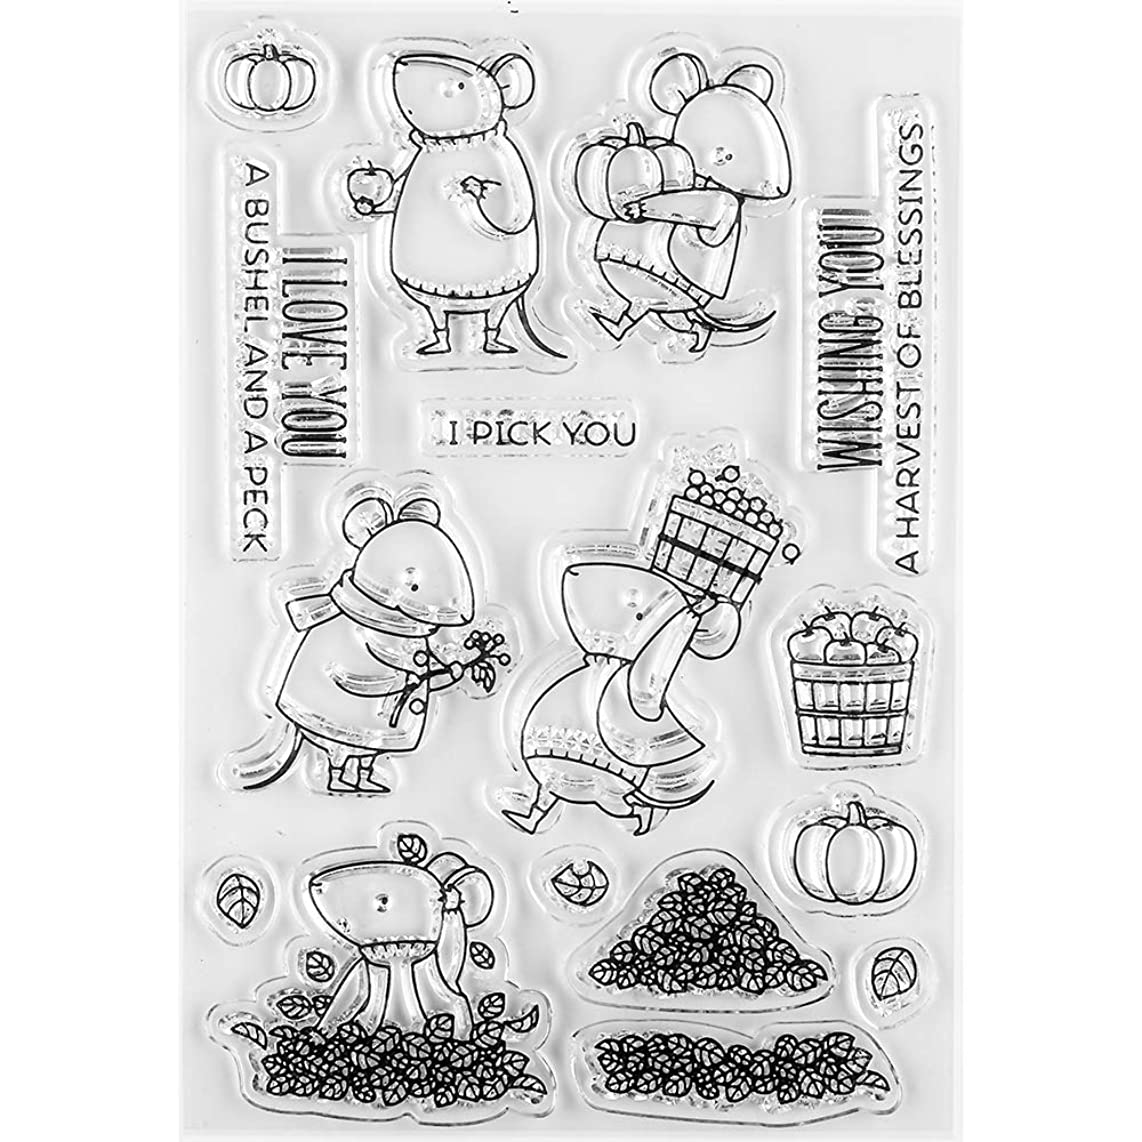 MaGuo Autumn Garden Clear Stamps Mouse in Good Harvest for Paper Craft Decoration and DIY Scrapbooking